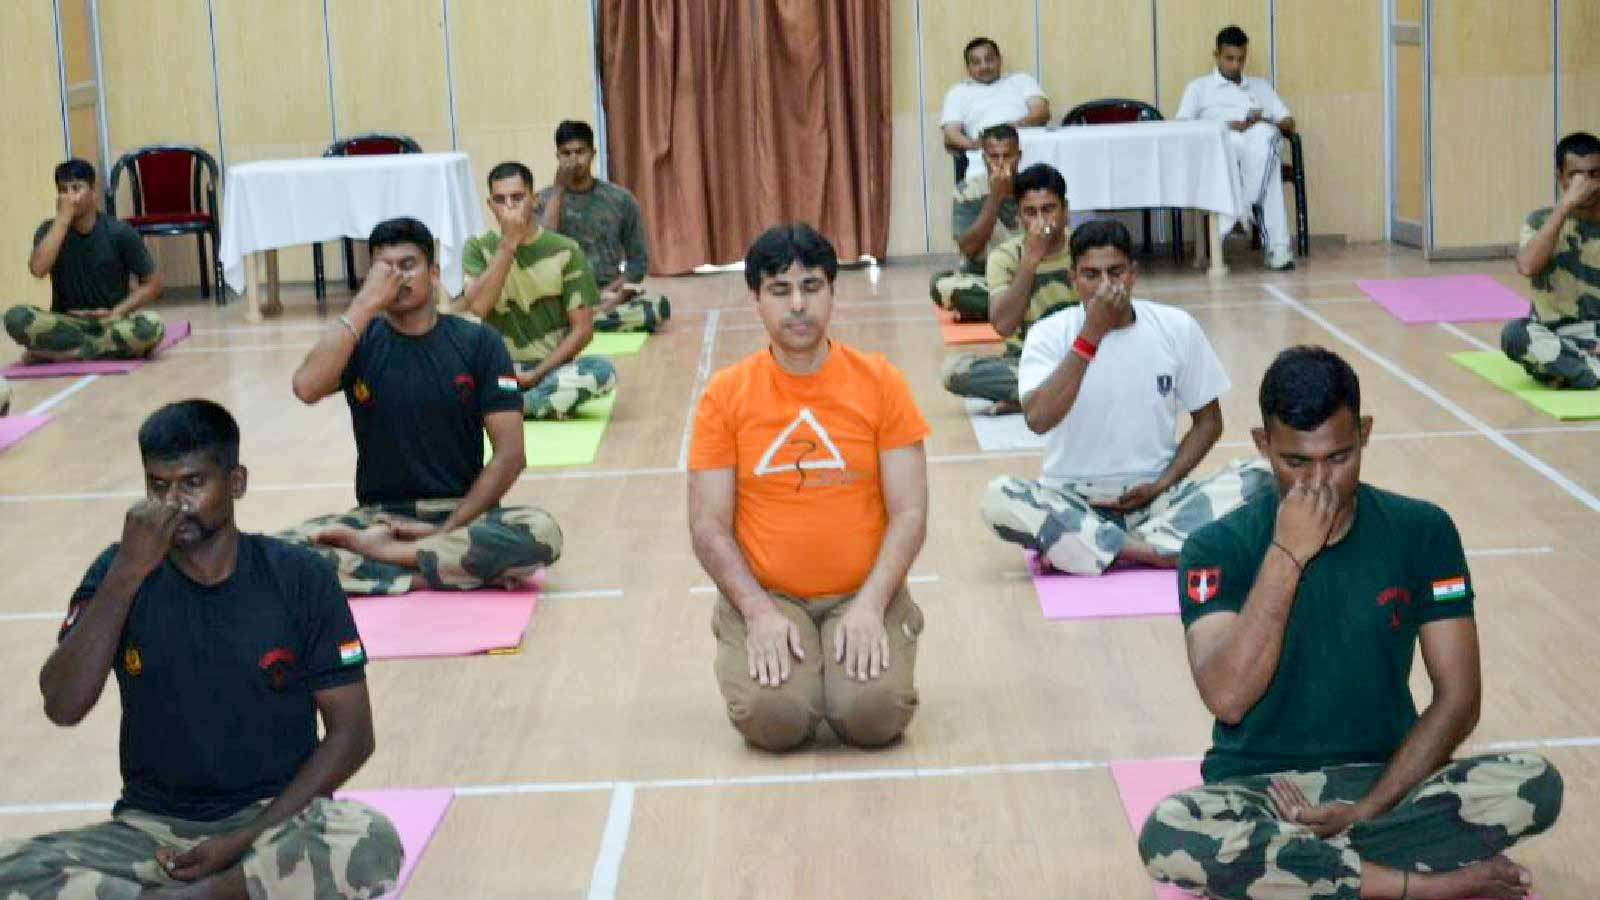 YogaDay Diaries 2017 - Rohan with BSF, Delhi